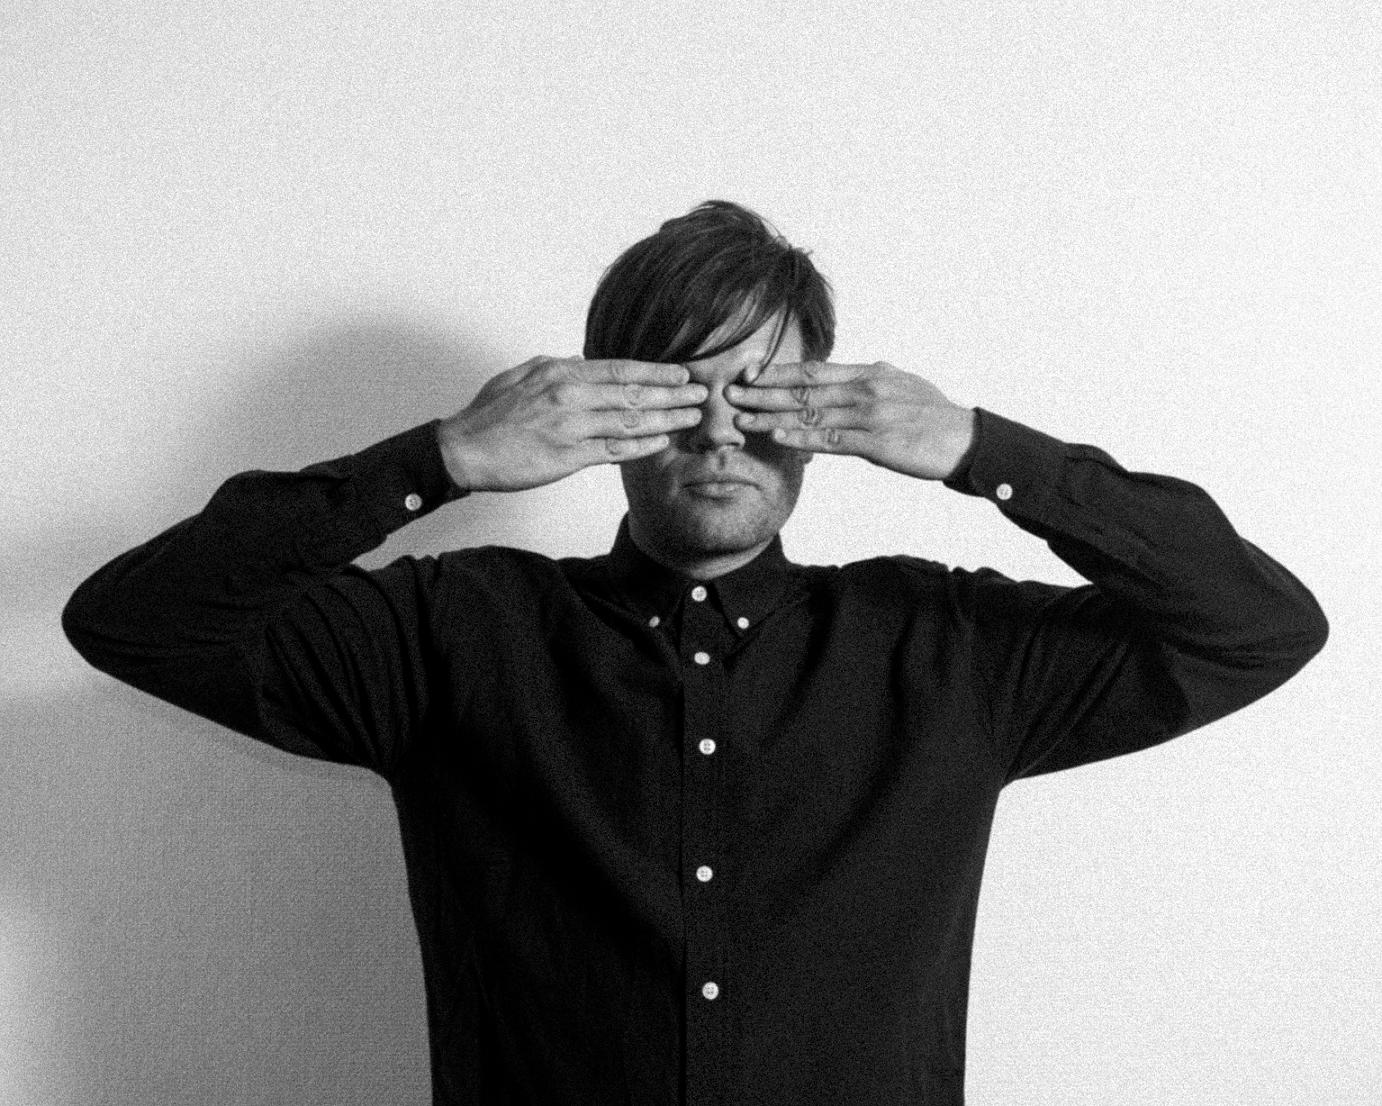 Win tickets to see Trentemøller on his UK tour!